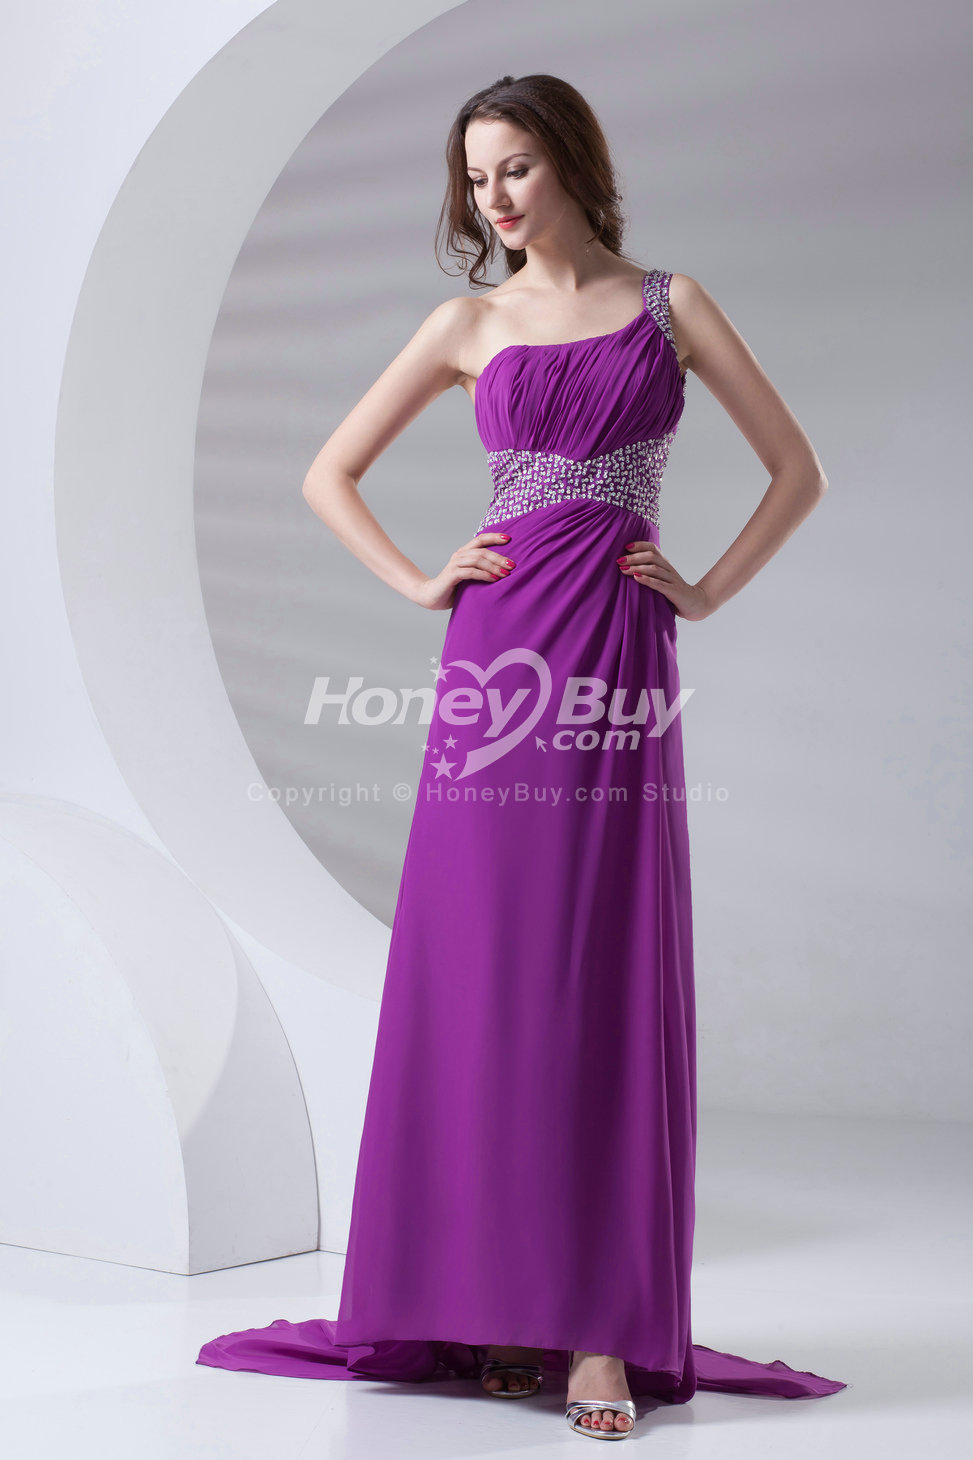 Honey Buy: Newly Released Dresses You can Buy Today on Honeybuy.com